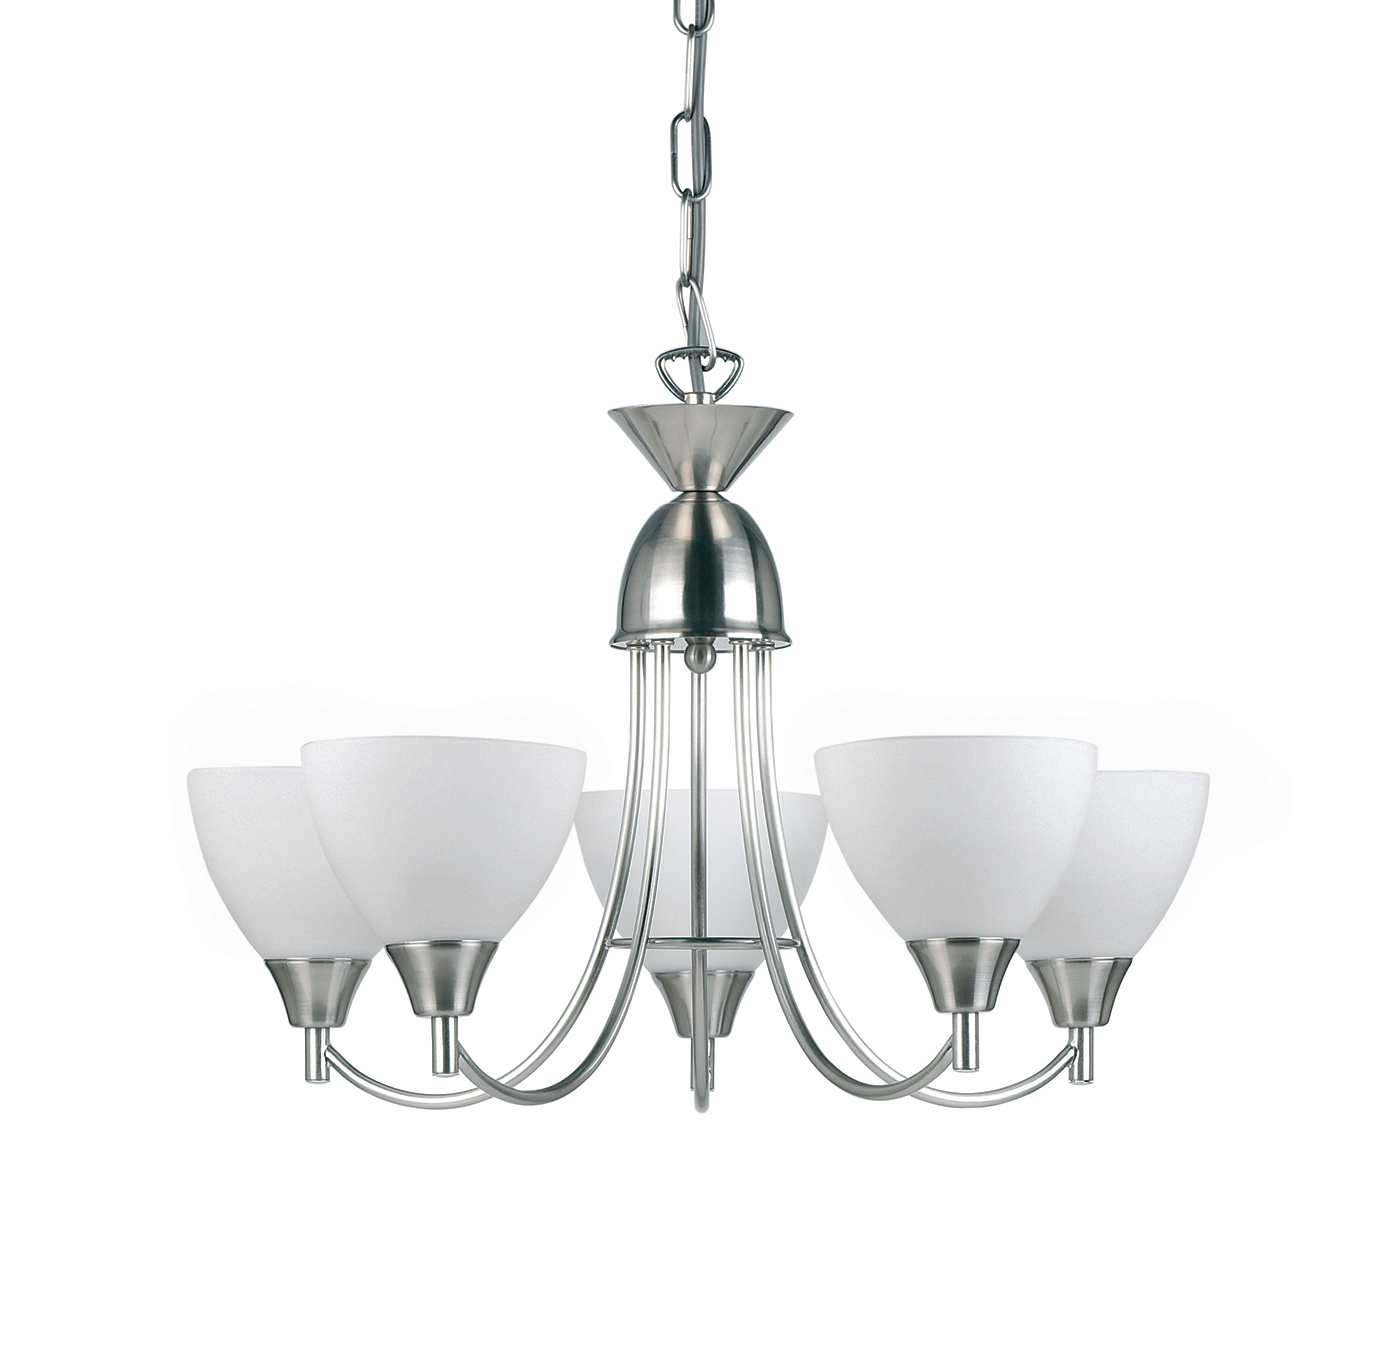 Endon Alton pendant 5x 60W Satin chrome effect plate & matt opal glass Thumbnail 1